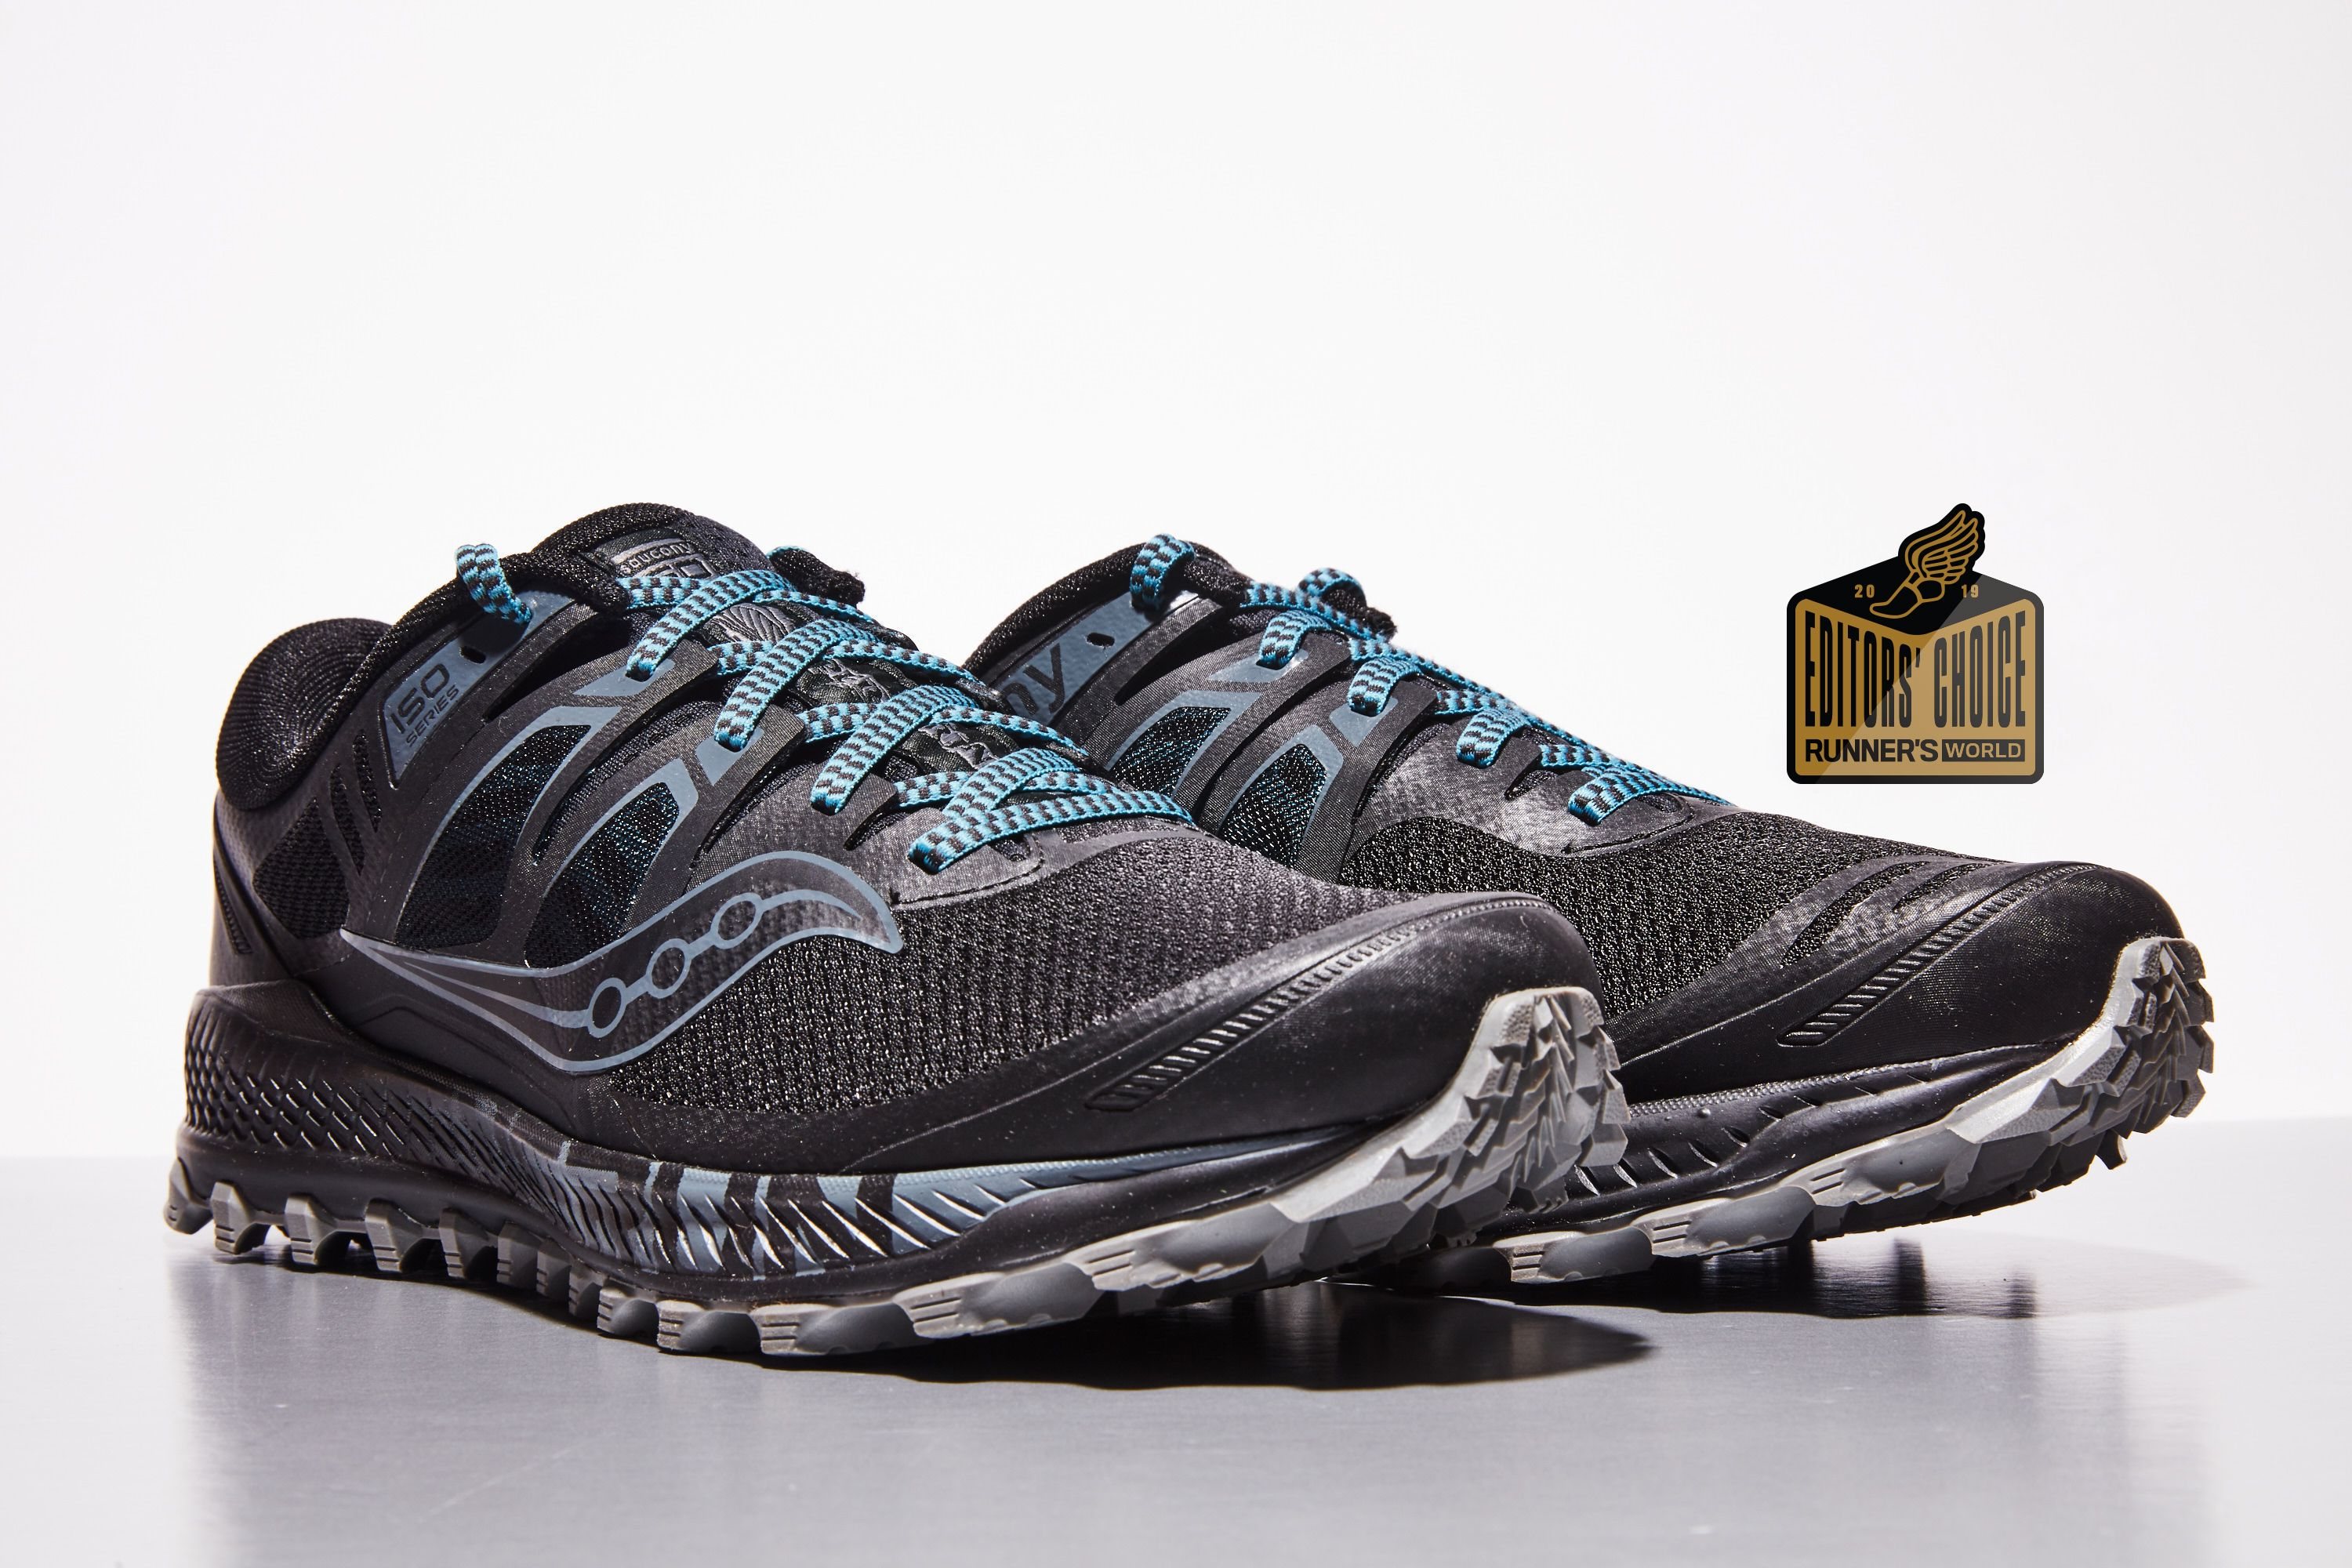 7863bbc506d Saucony Peregrine ISO Review - Saucony Trail Running Shoe